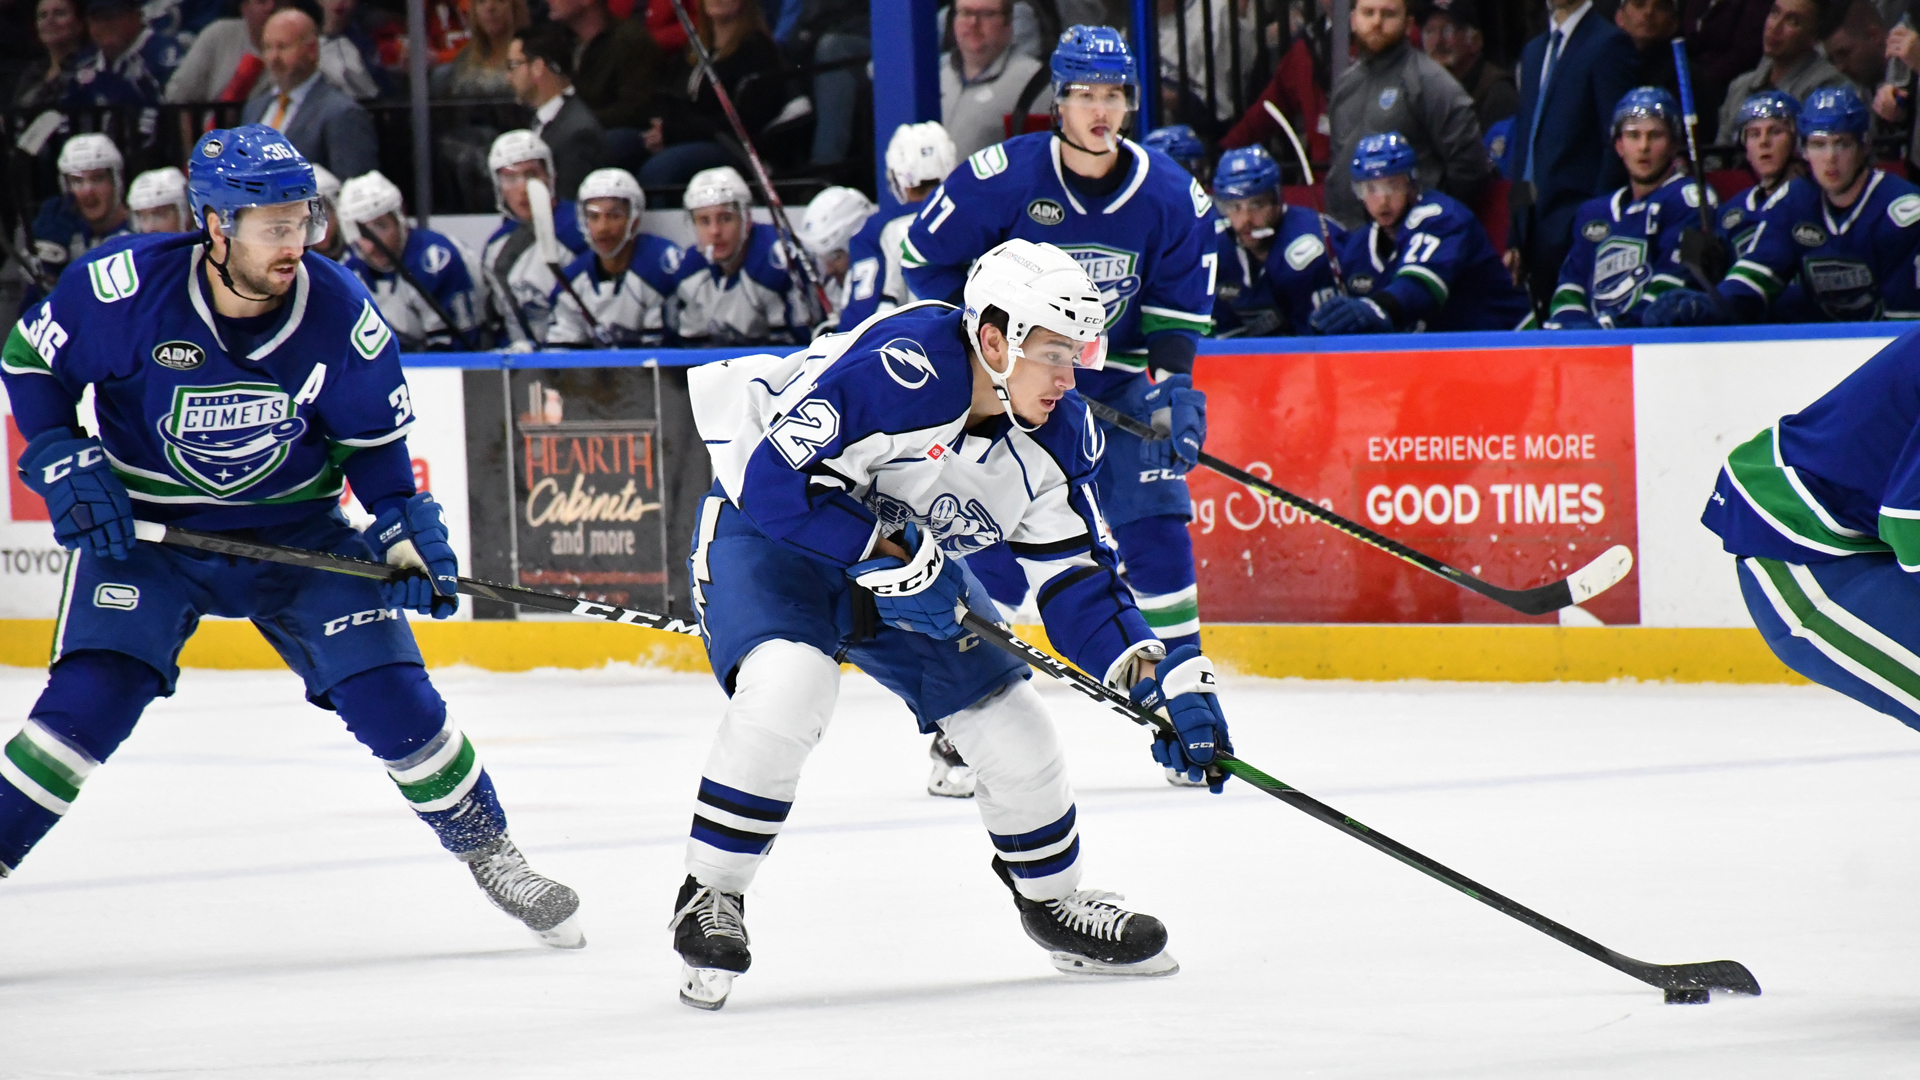 Crunch surpassed by Comets, 5-2